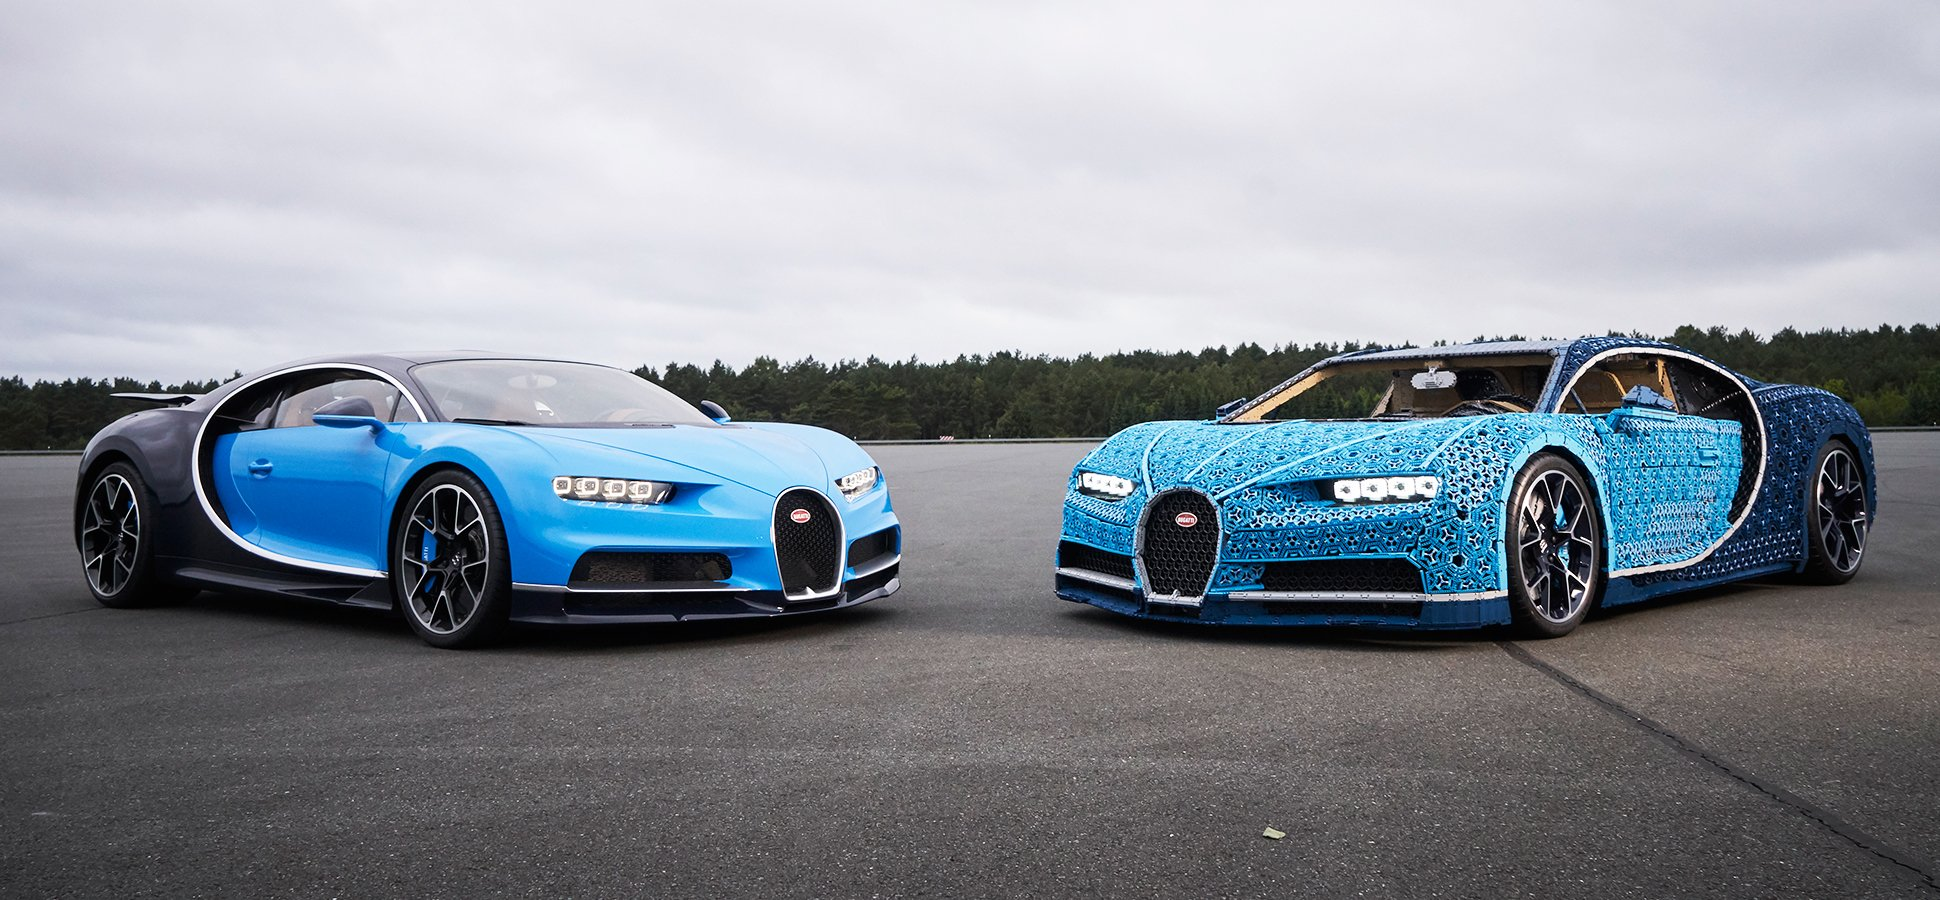 LEGO Nails Another Smart Marketing Opportunity With a Life-Size, Drivable Bugatti Chiron Car ...